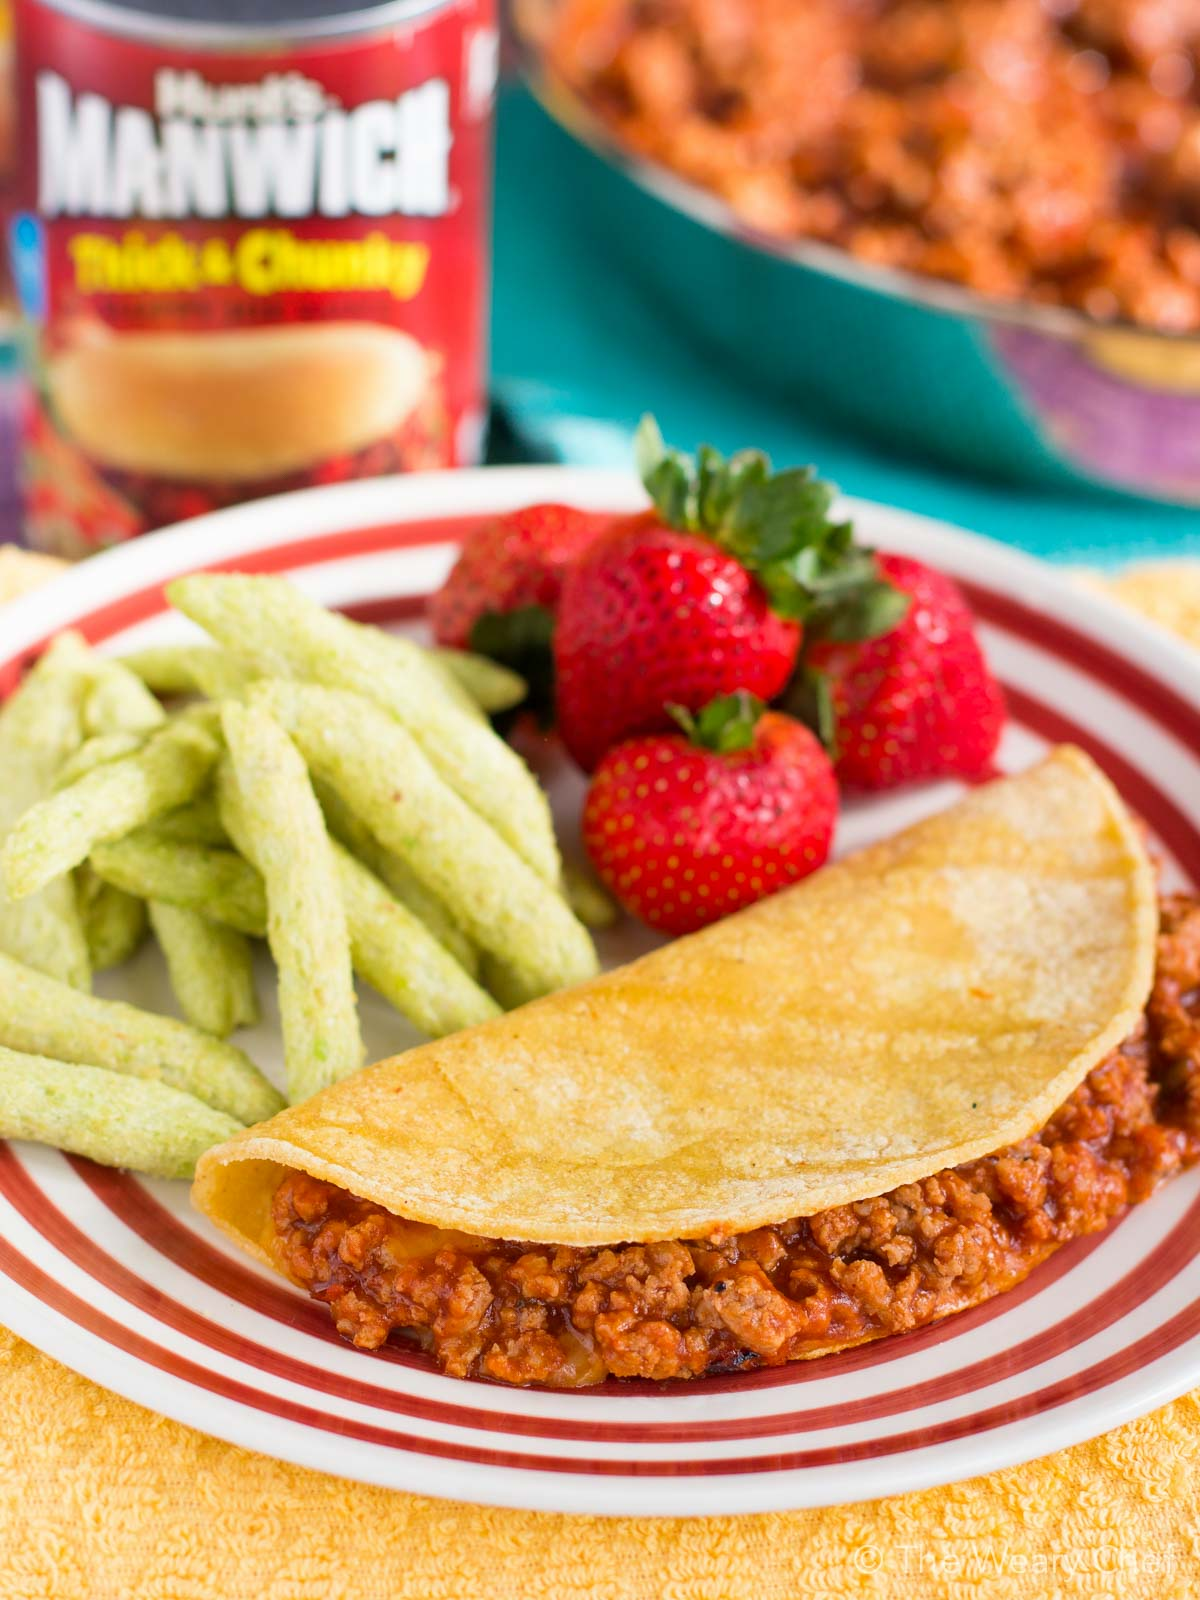 Looking for a fun weeknight dinner idea? Look no further than this easy, filling, and wholesome Sloppy Joe Quesadilla Recipe!